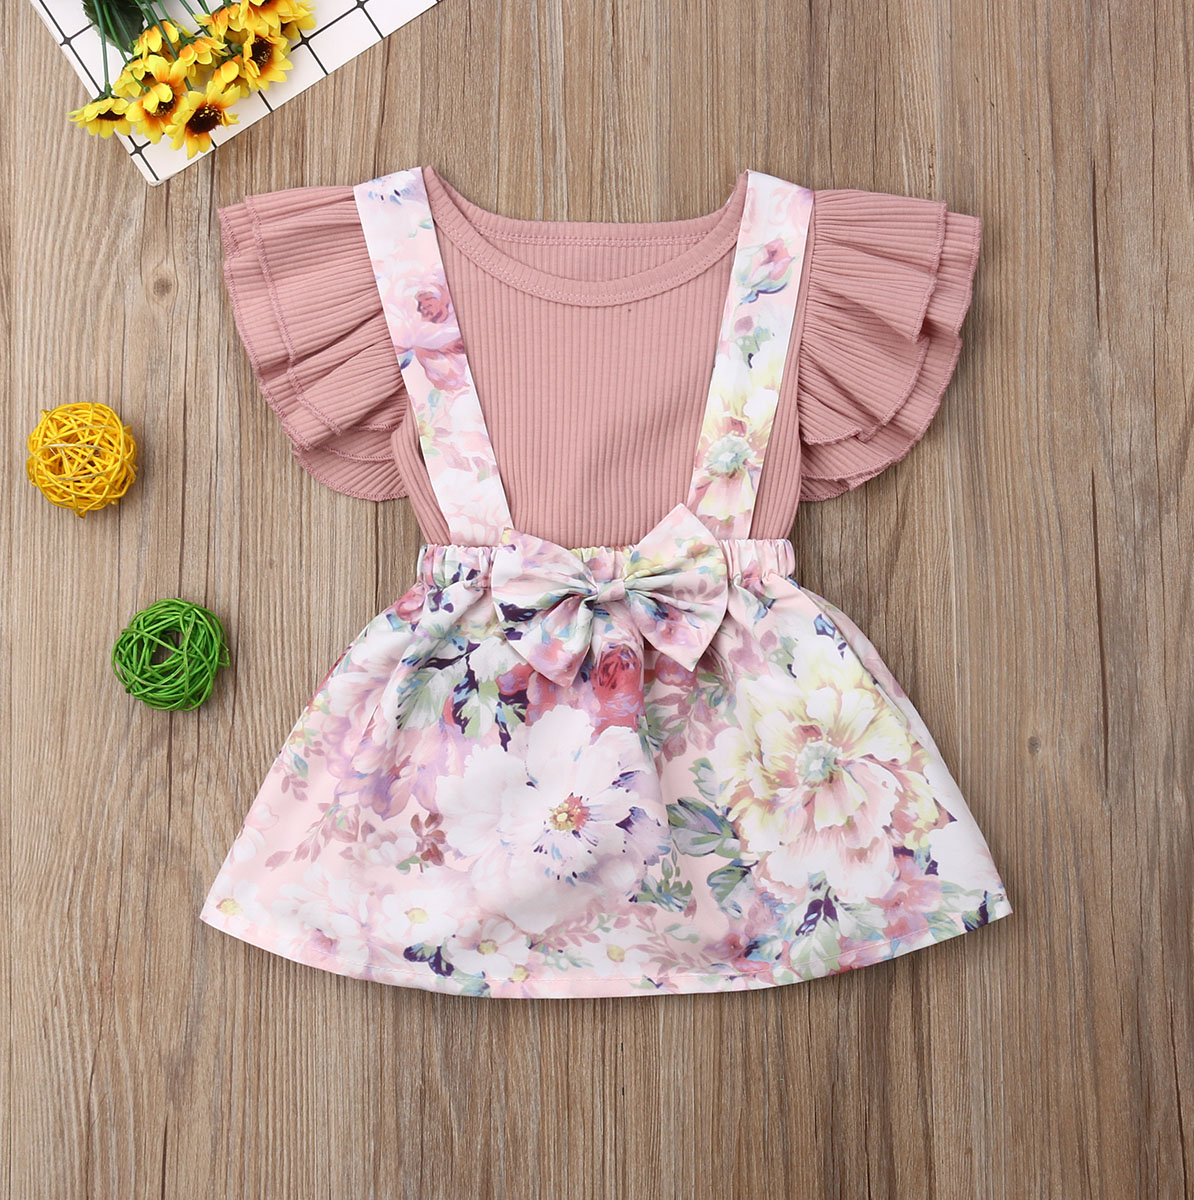 0376a1d11 Pudcoco Newborn Baby Girl Clothes Solid Color Ruffle Romper Tops Flower  Print Strap Skirt 2Pcs Outfits Summer Clothes